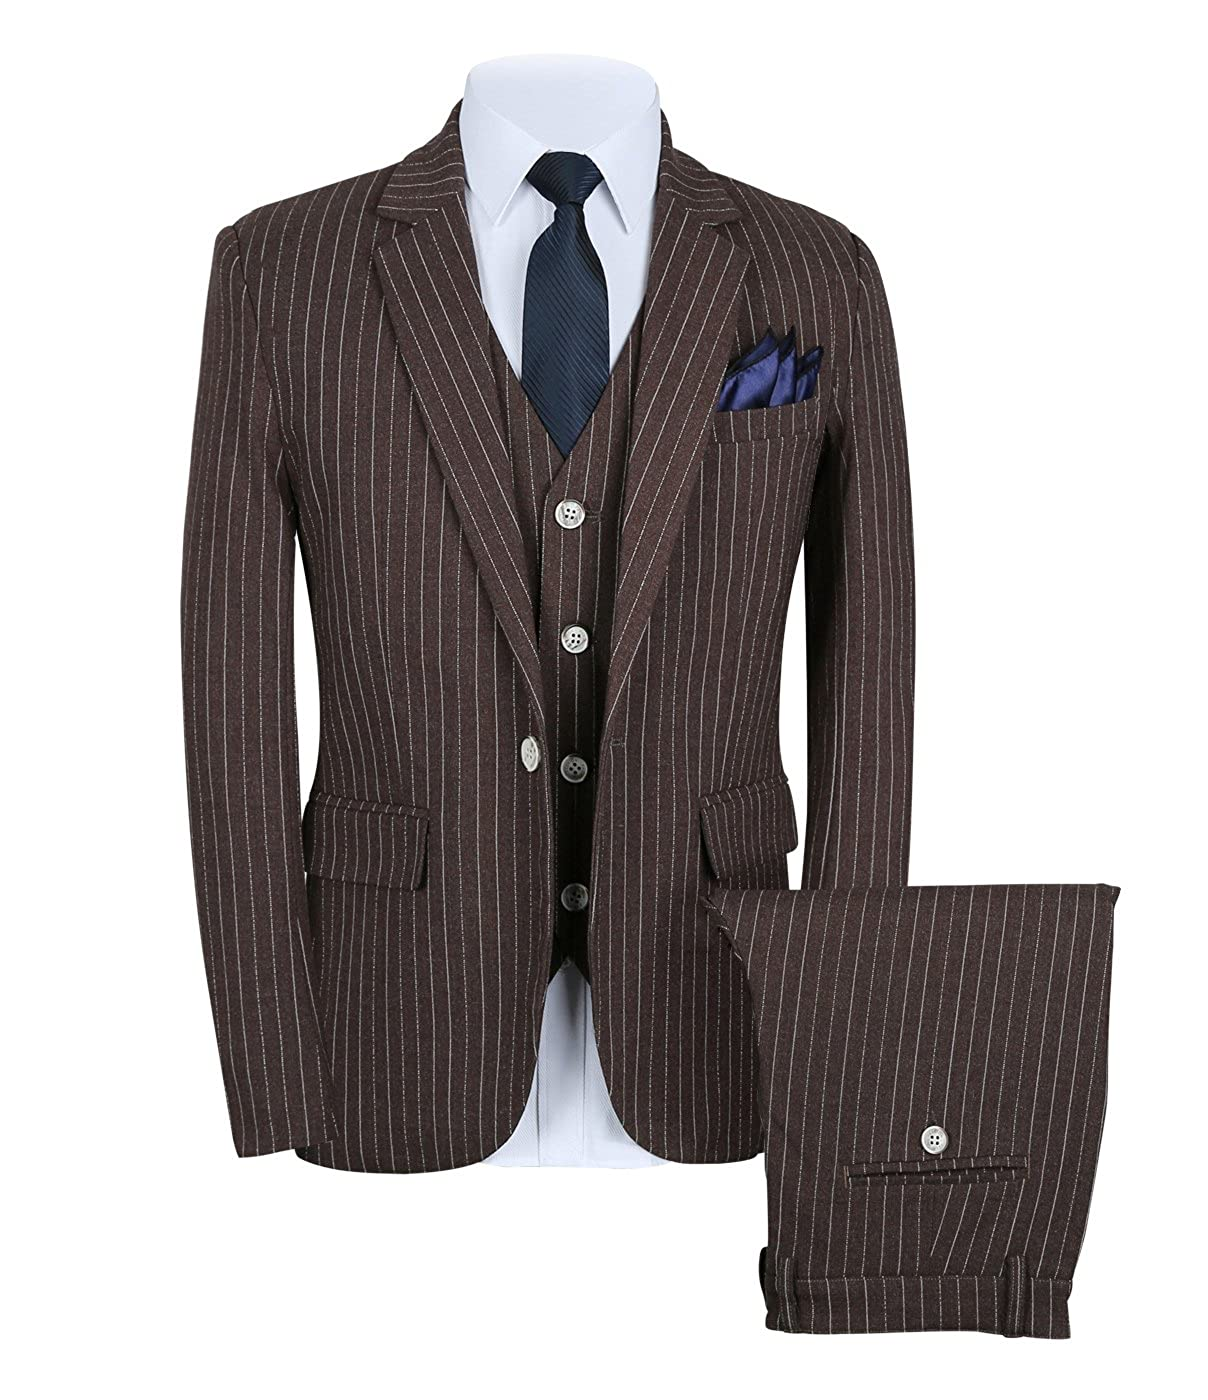 MOGU Mens Pinstripe Suit 3 Piece Slim Fit Casual Dress Suits Blazer+Vest+Pants